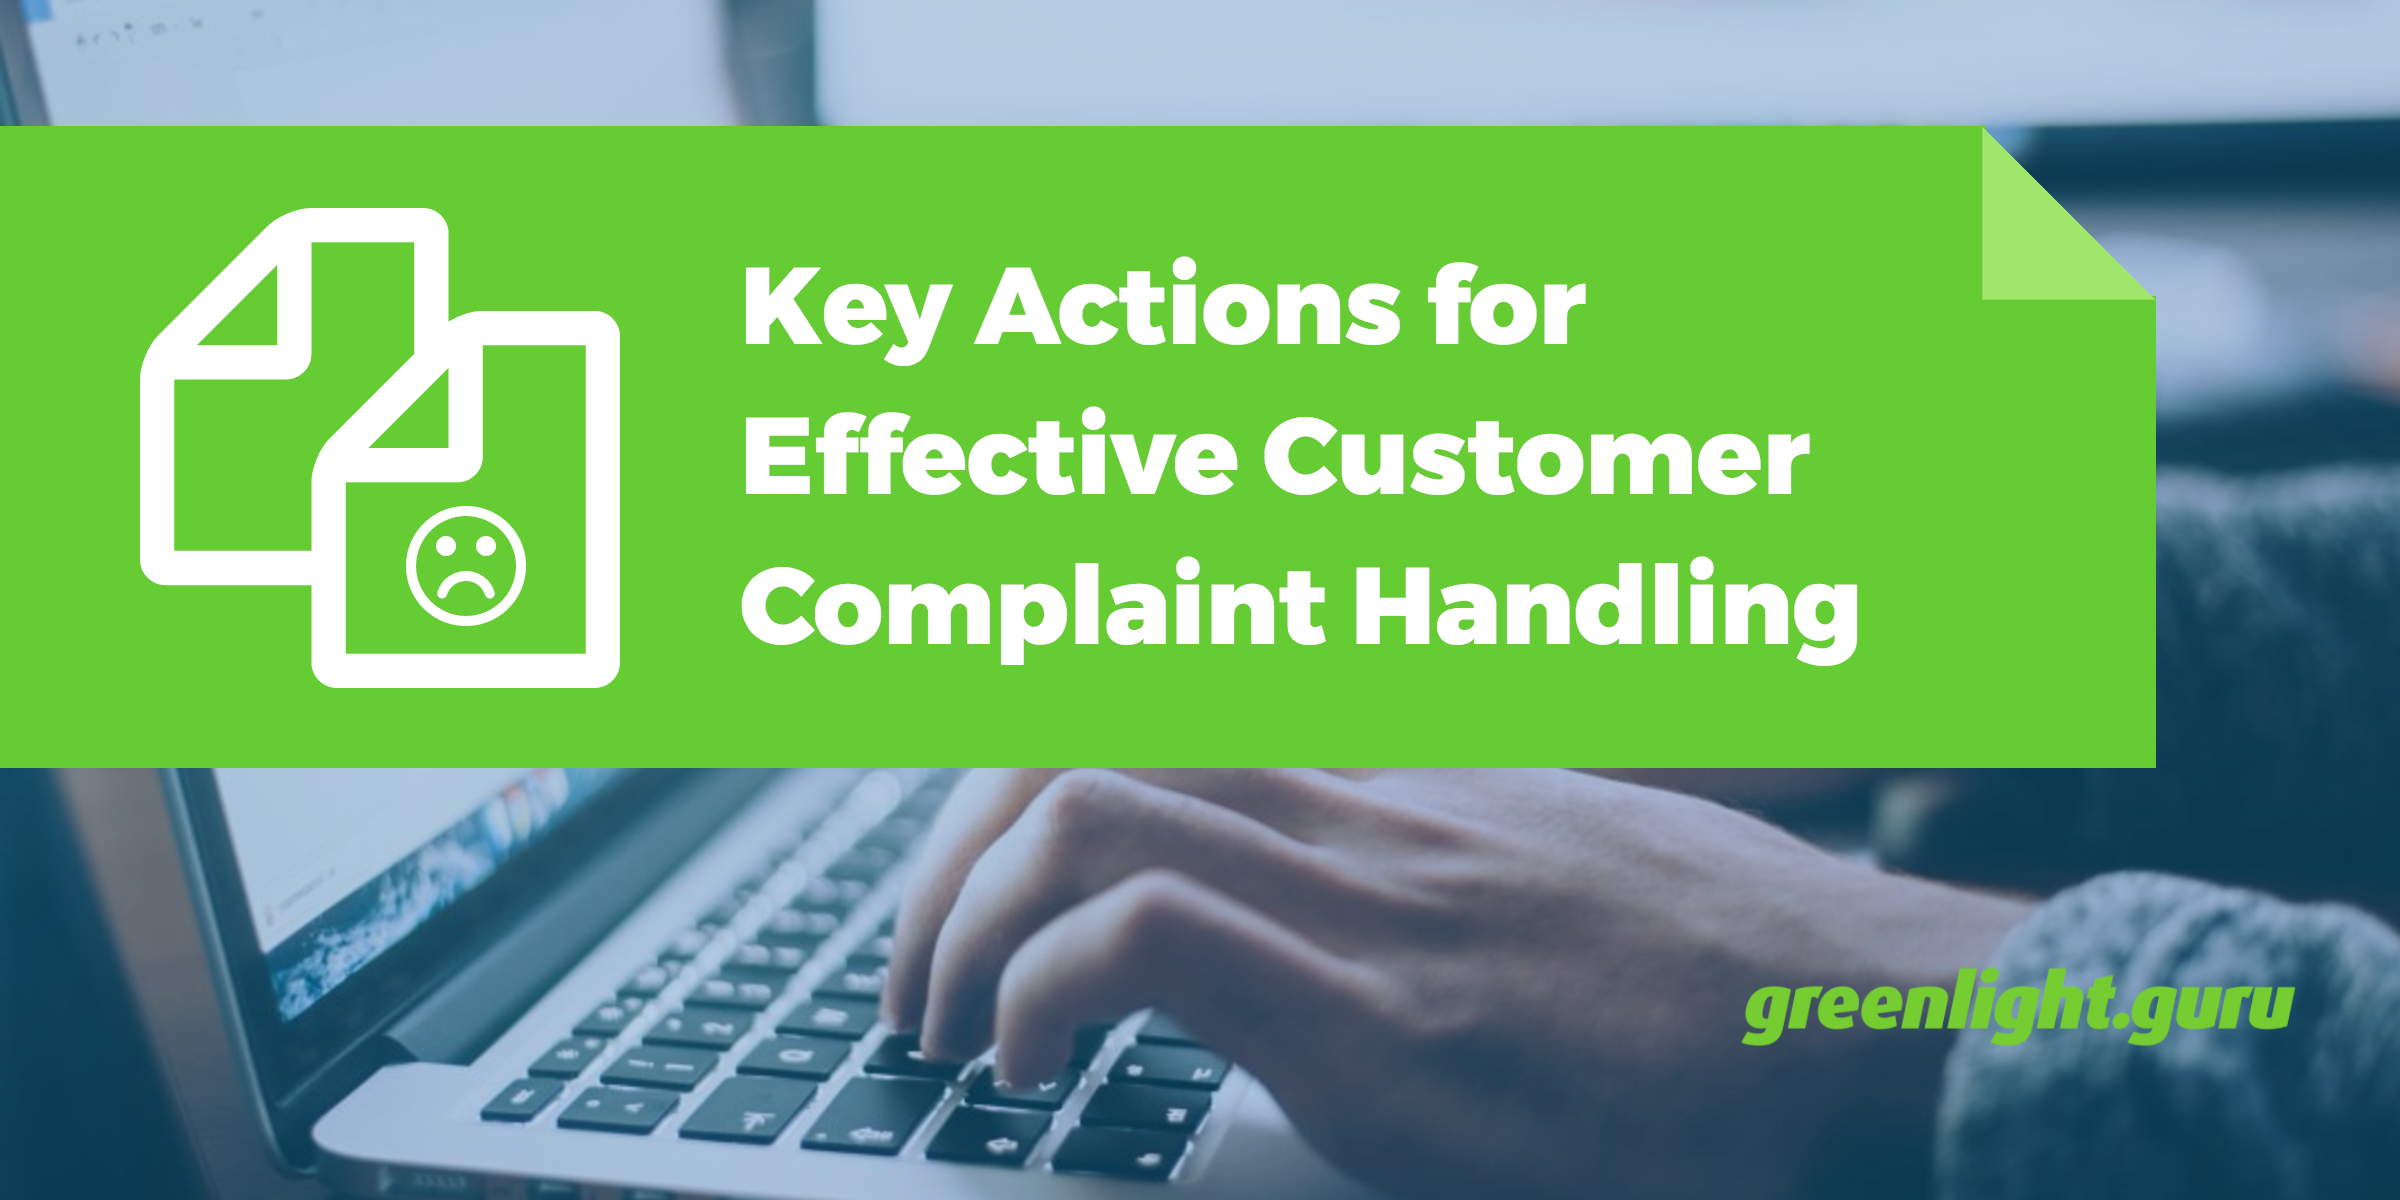 Key Actions for Effective Customer Complaint Handling - Featured Image